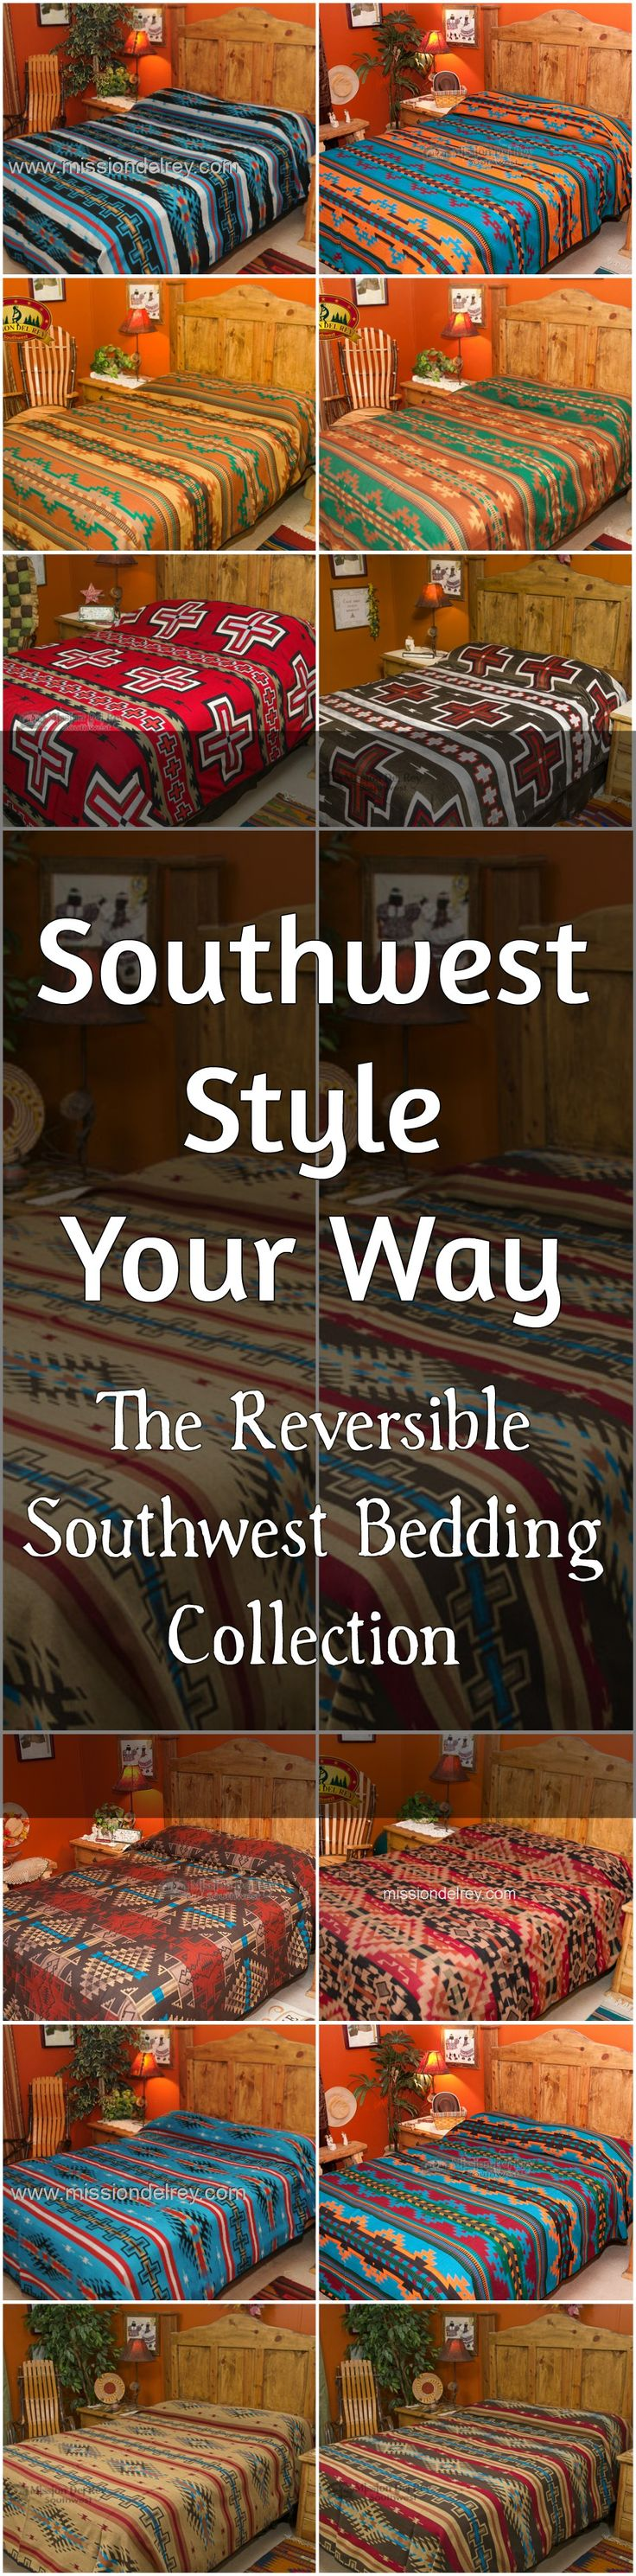 If you are looking to update your decor with the beautiful designs and colors of the southwest, check out our reversible, southwest bedding collection. Instantly change the look of any room, and give your home designer style with one of our beautiful, reversible bedspreads.  Our southwest bedspreads come in king, queen and twin size, and are the perfect accent piece for southwestern decor.  See more at http://www.missiondelrey.com/southwestern-bedspreads/